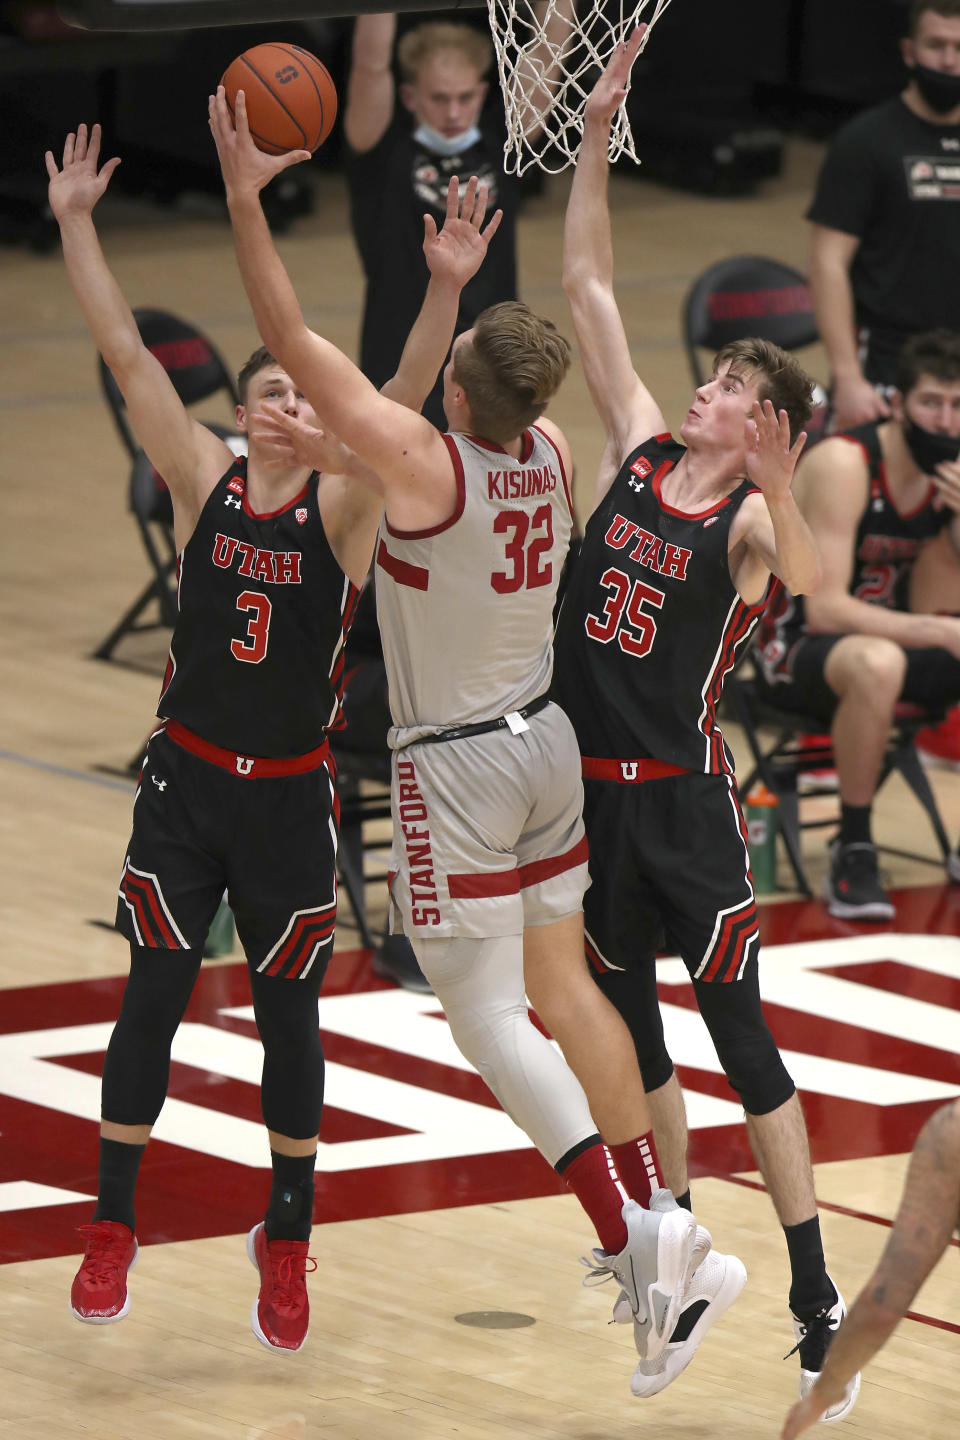 Utah guard Pelle Larsson (3) and center Branden Carlson (35) defend against Stanford forward Lukas Kisunas (32) during the first half of an NCAA college basketball game Saturday, Feb. 13, 2021, in Stanford, Calif. (AP Photo/Scot Tucker)